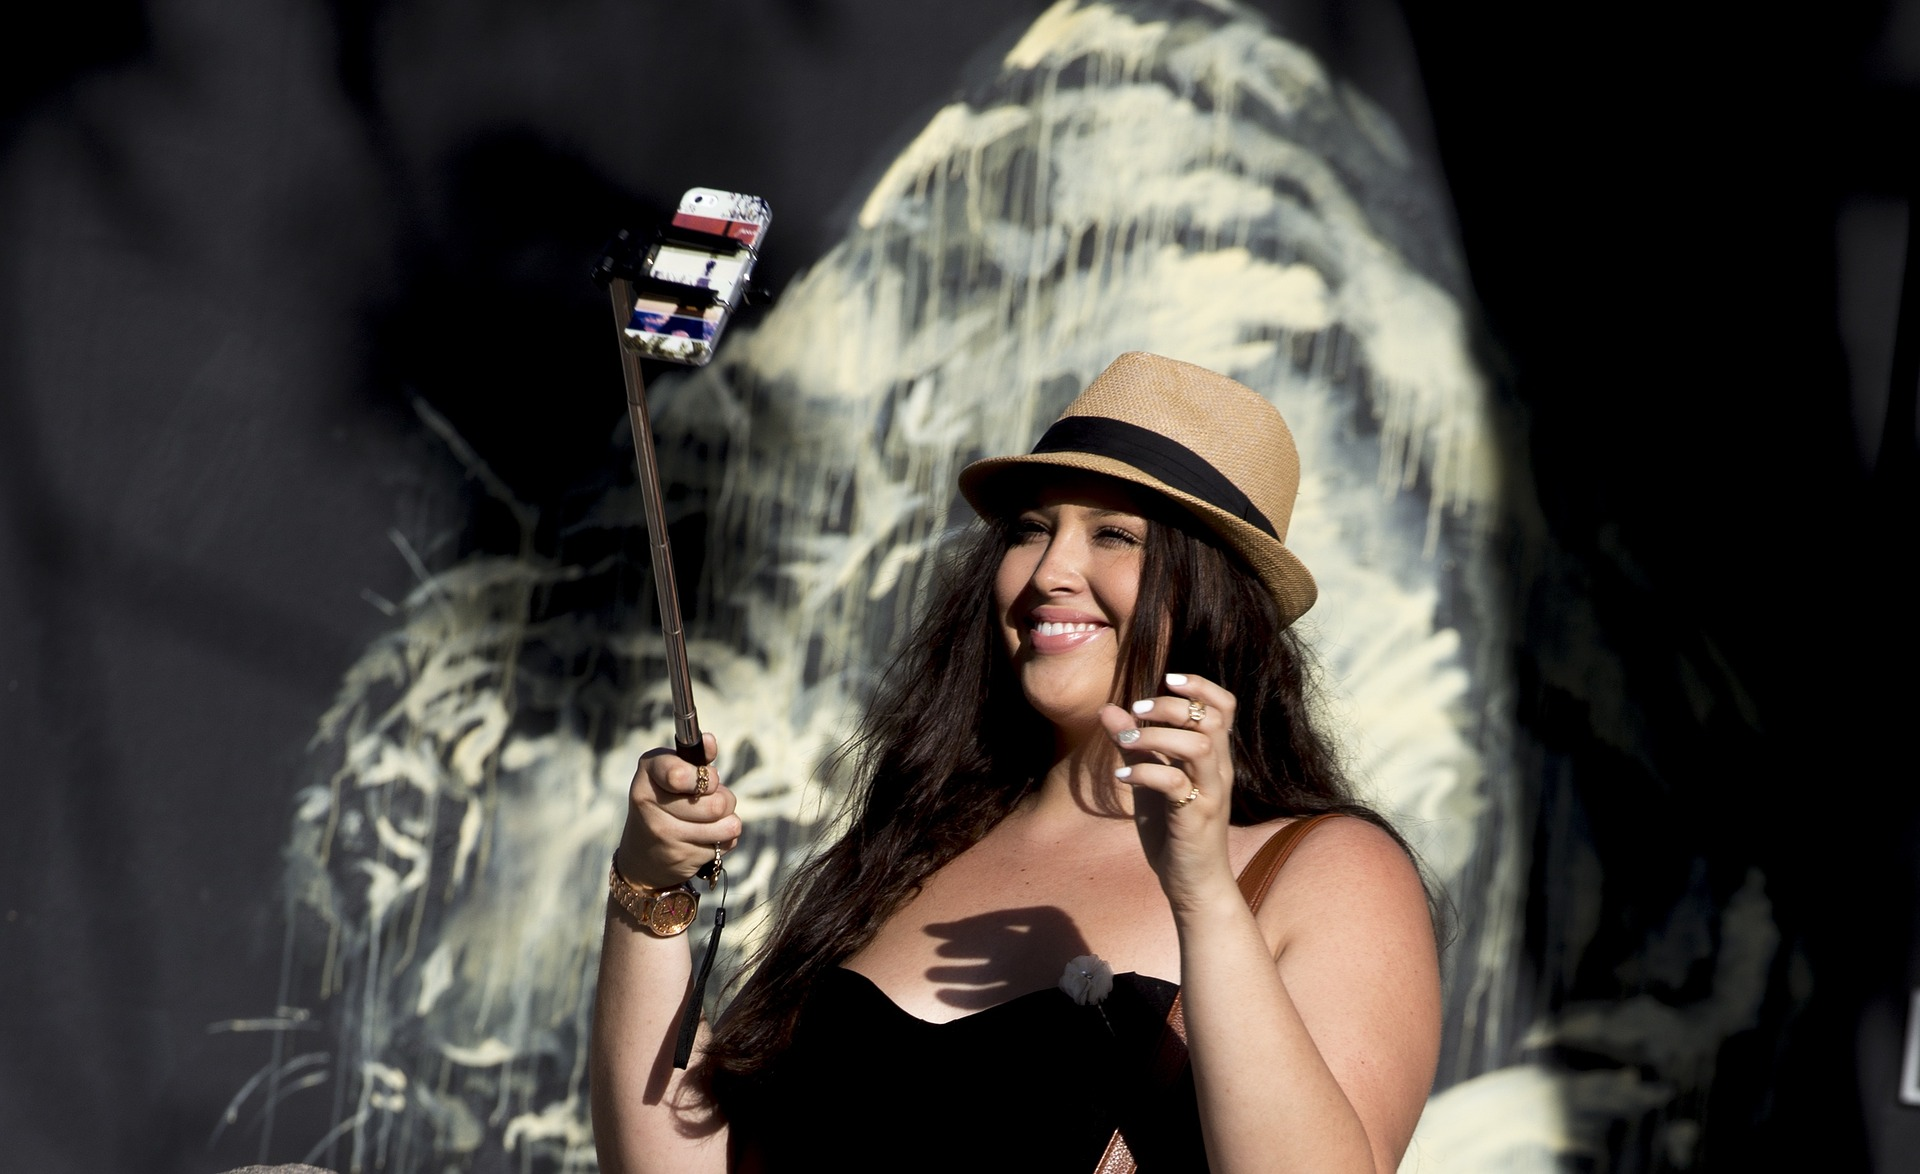 Woman smiling and taking photo with selfie stick